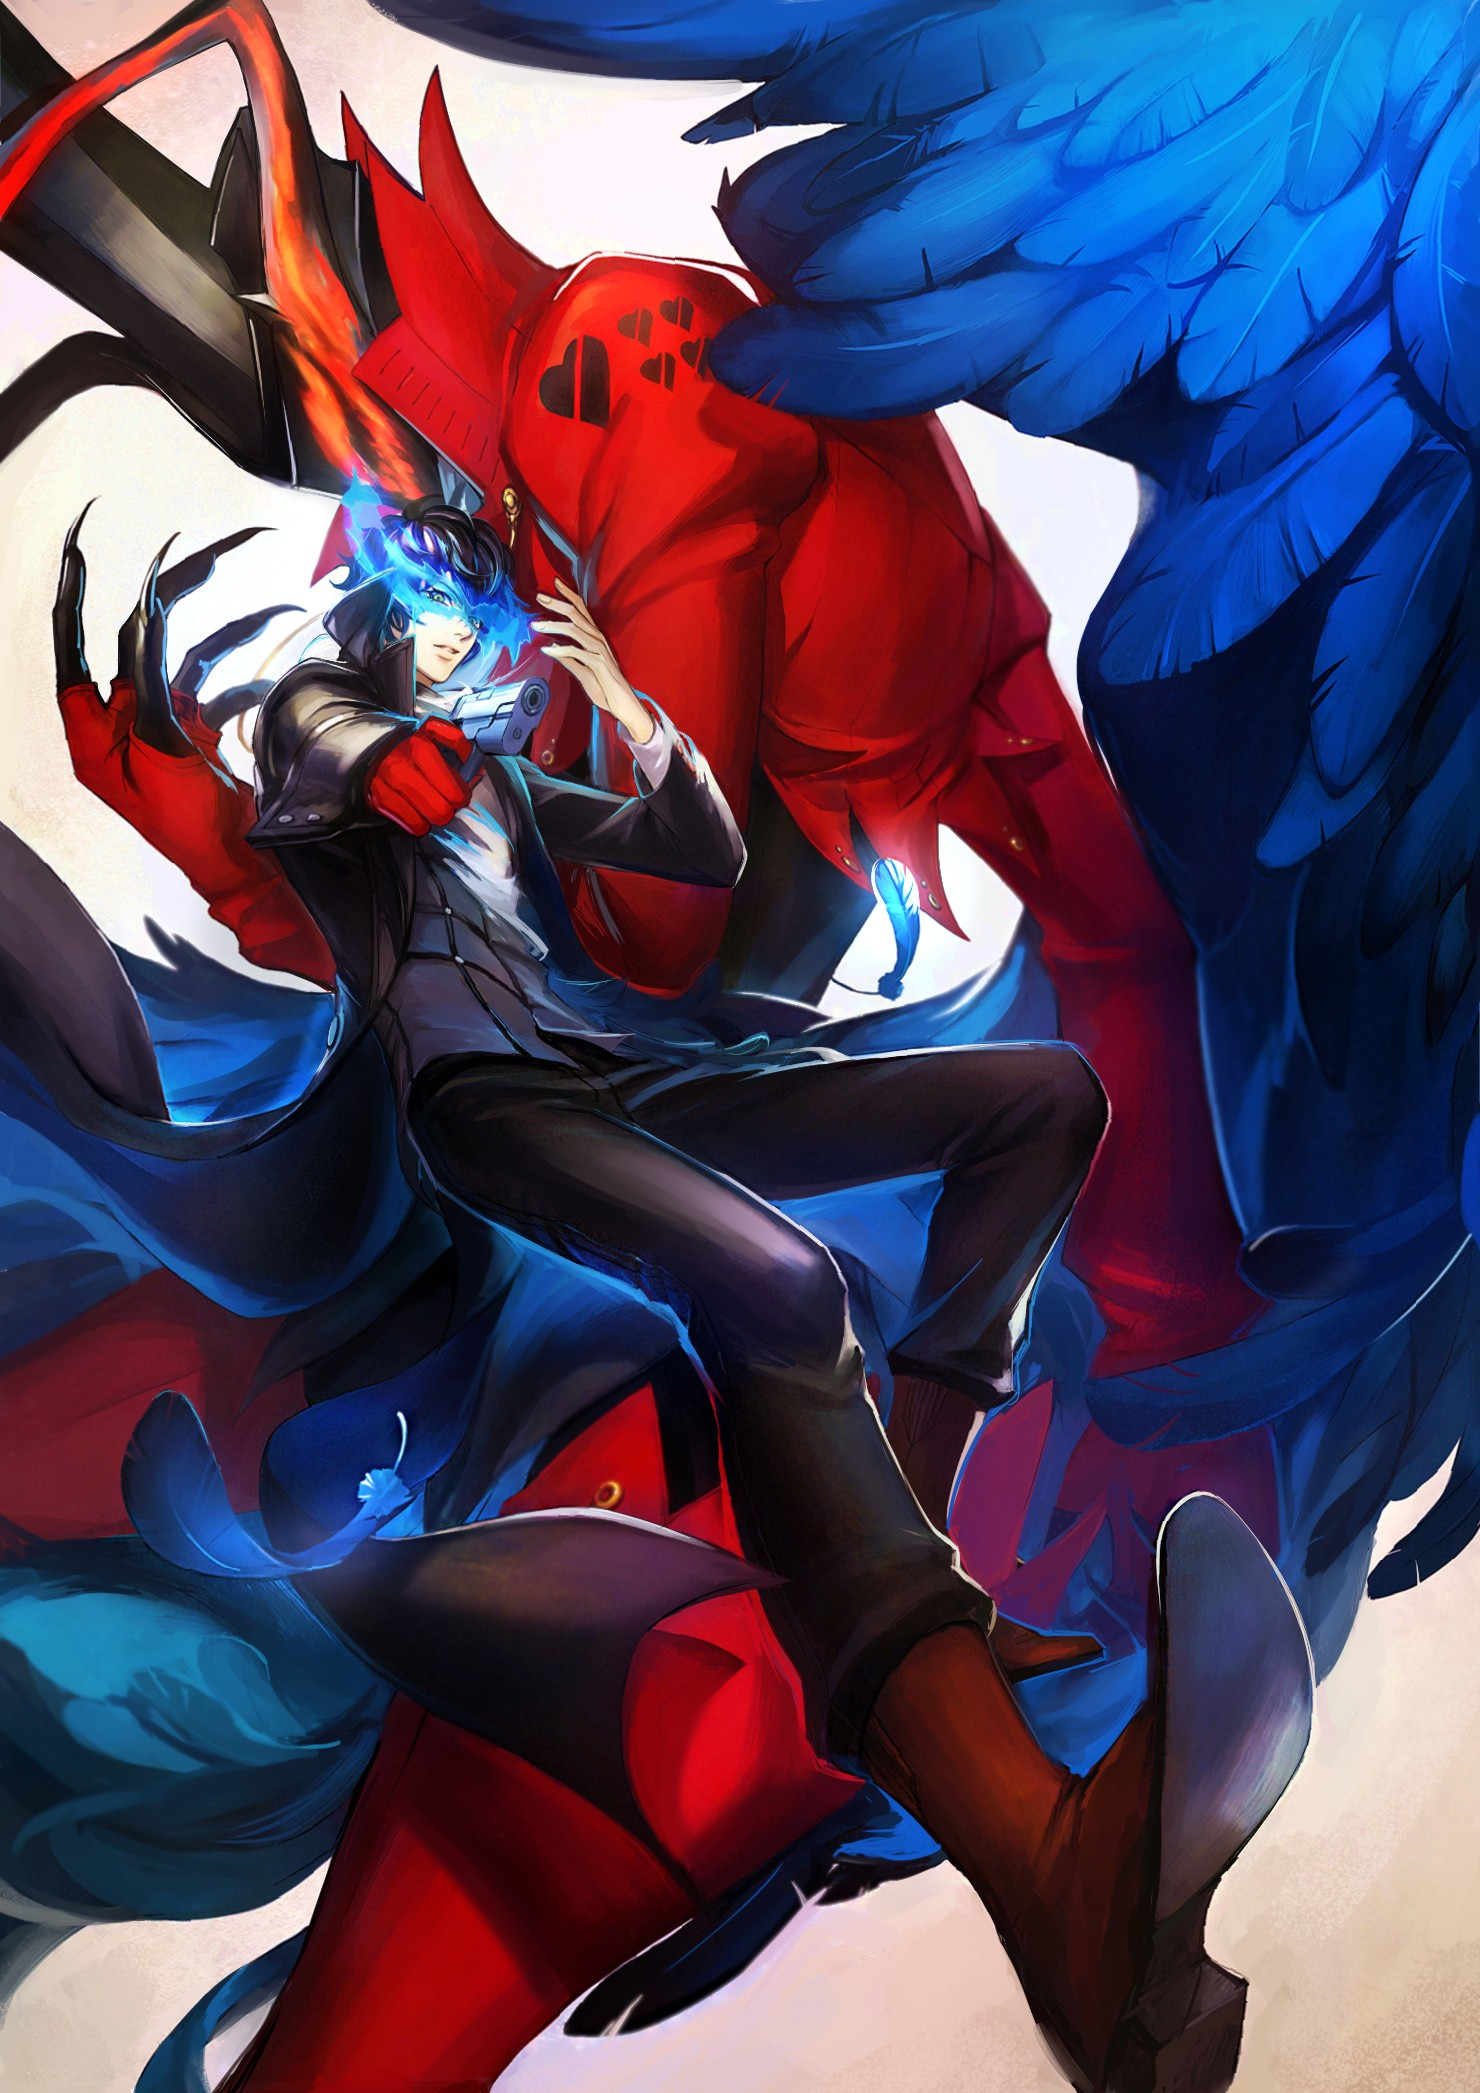 Persona 5 wallpaper ·① Download free full HD backgrounds ...